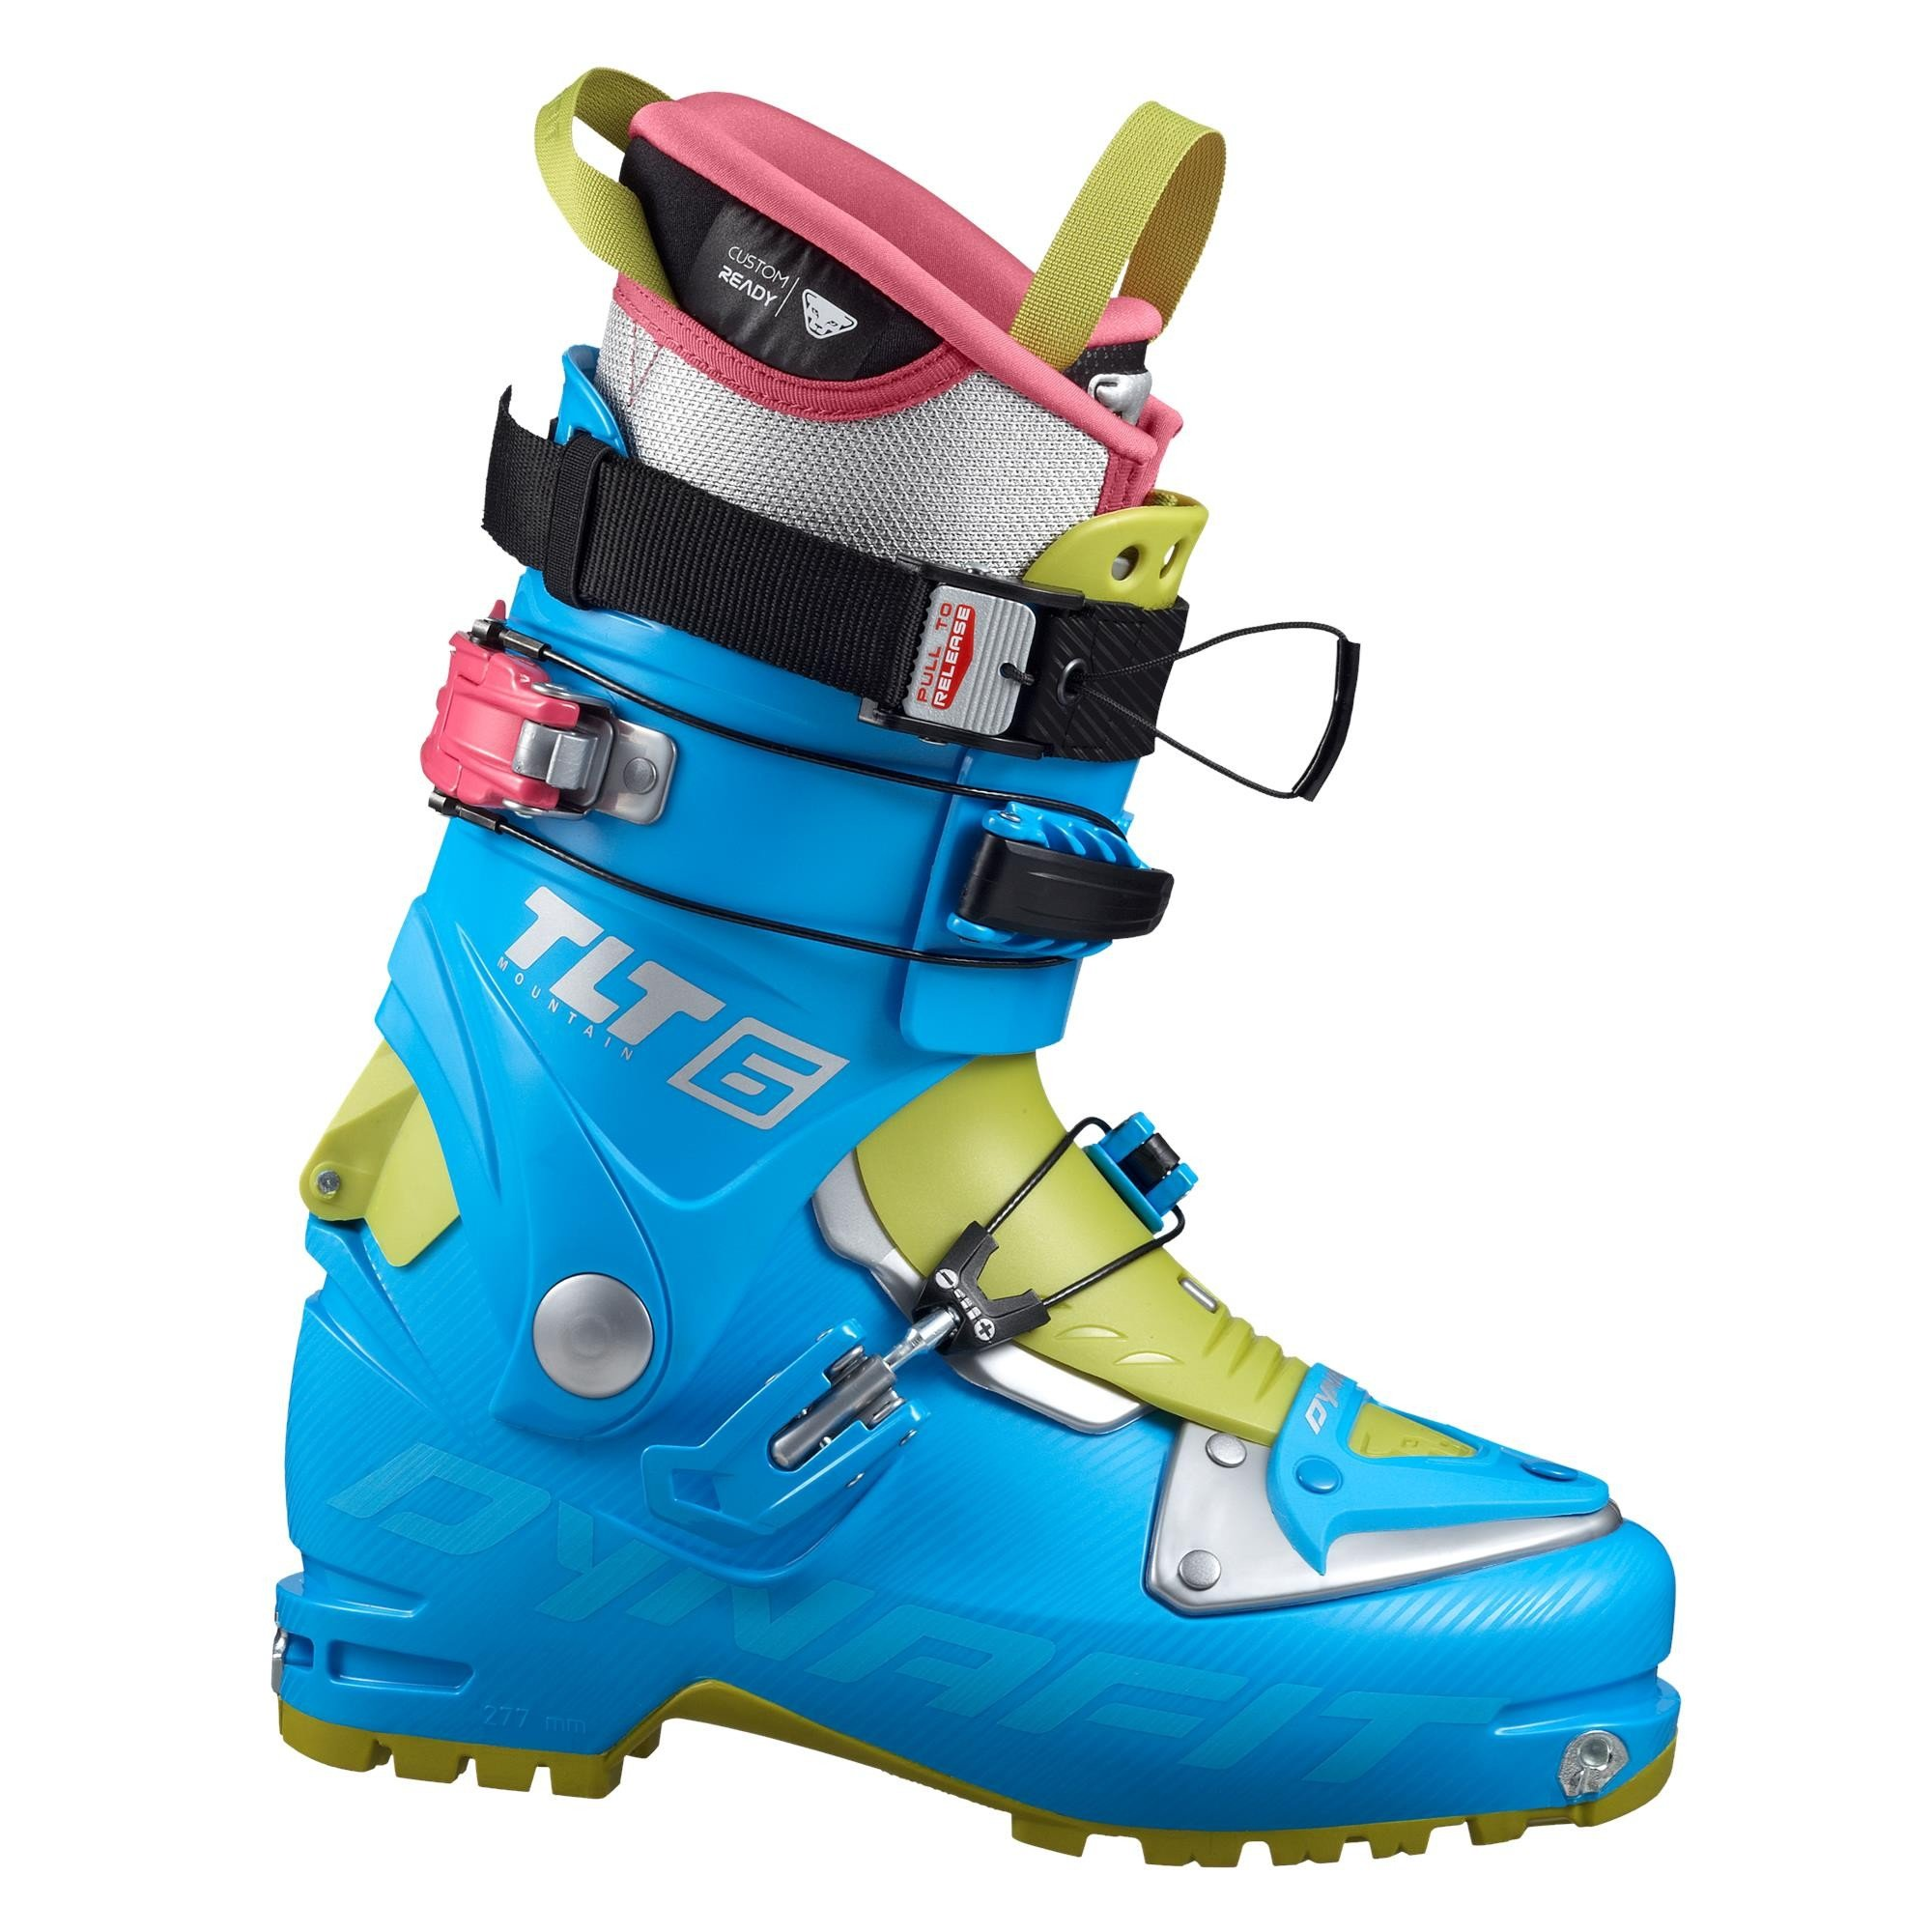 Dynafit W's Tlt 6 Mountain Cr Boot 201 Azur/cit 26.5 by Dynafit